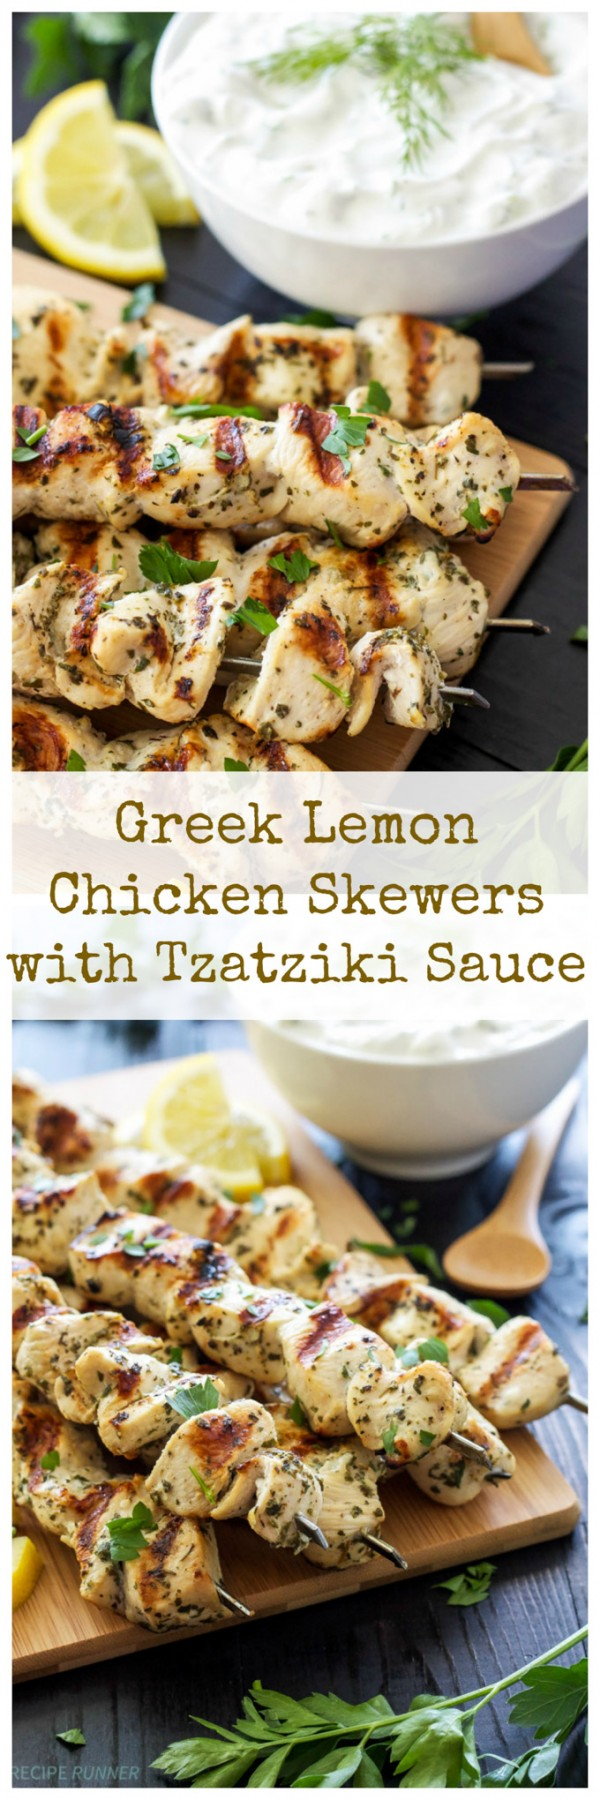 Get the recipe Greek Lemon Chicken Skewers with Tzatziki Sauce @recipes_to_go